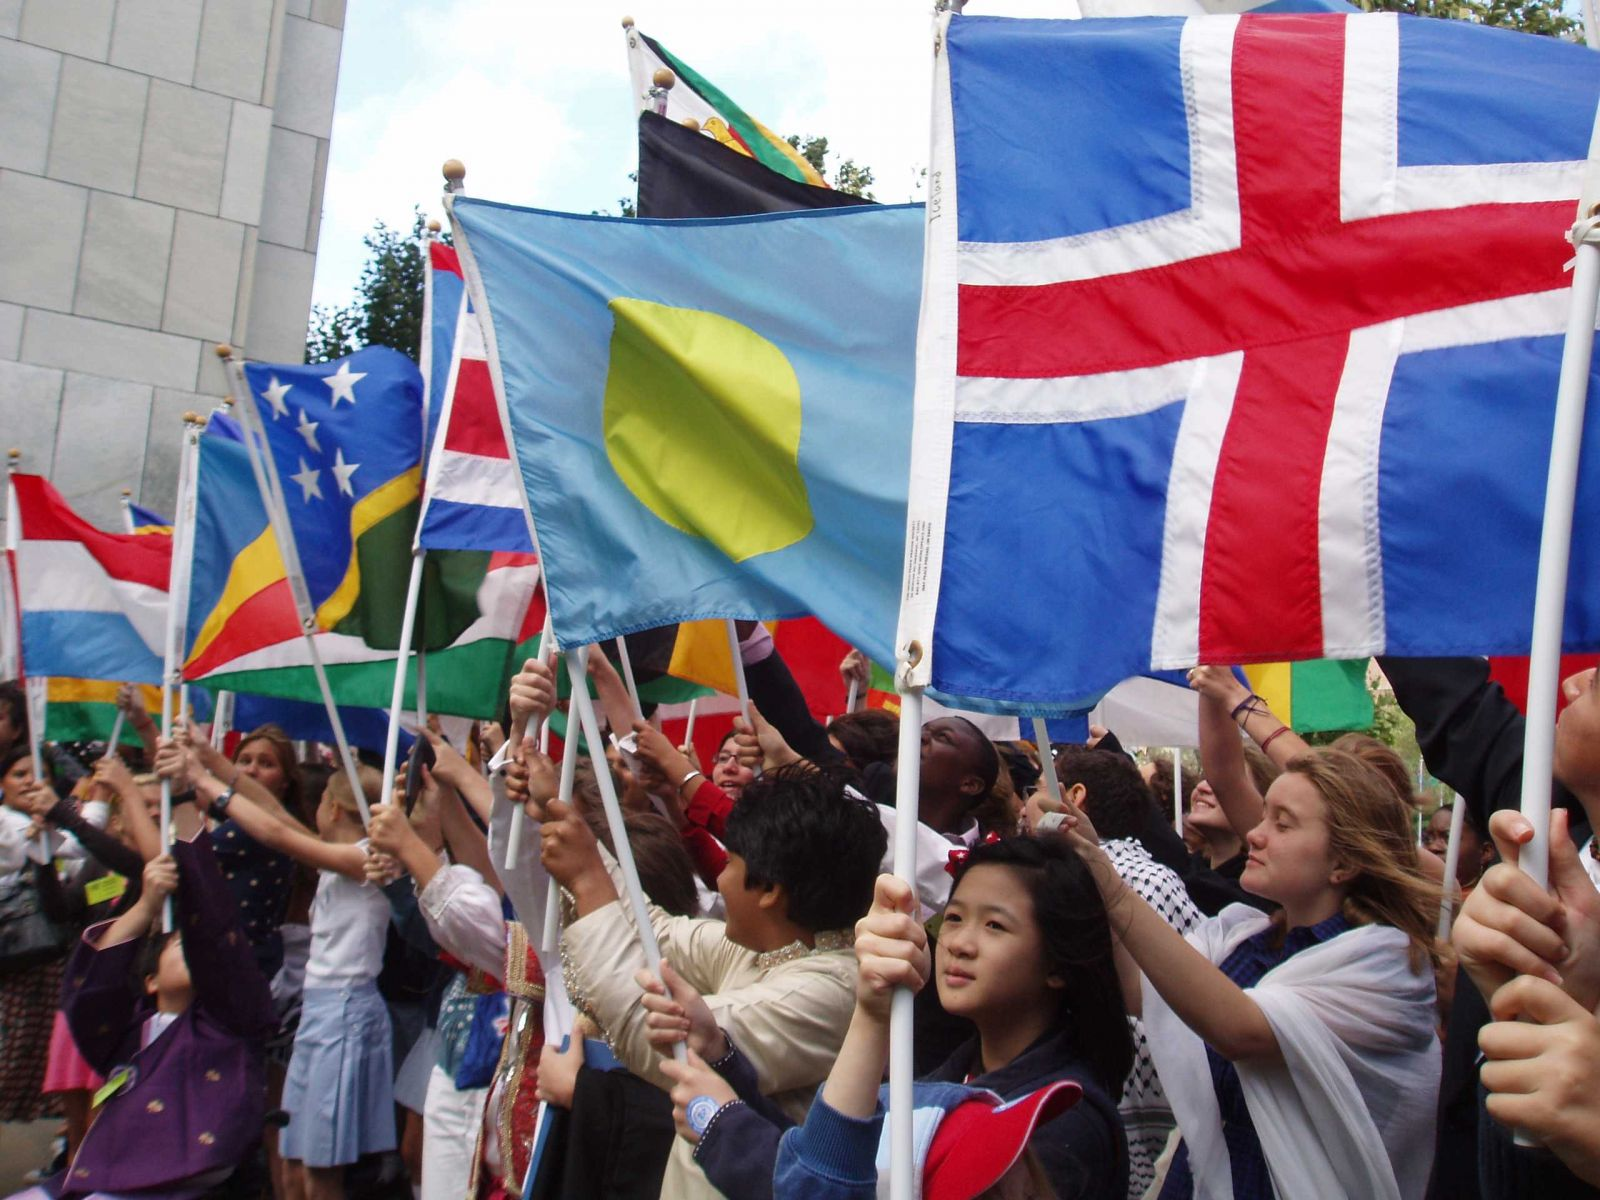 Students Raise Flags at UN